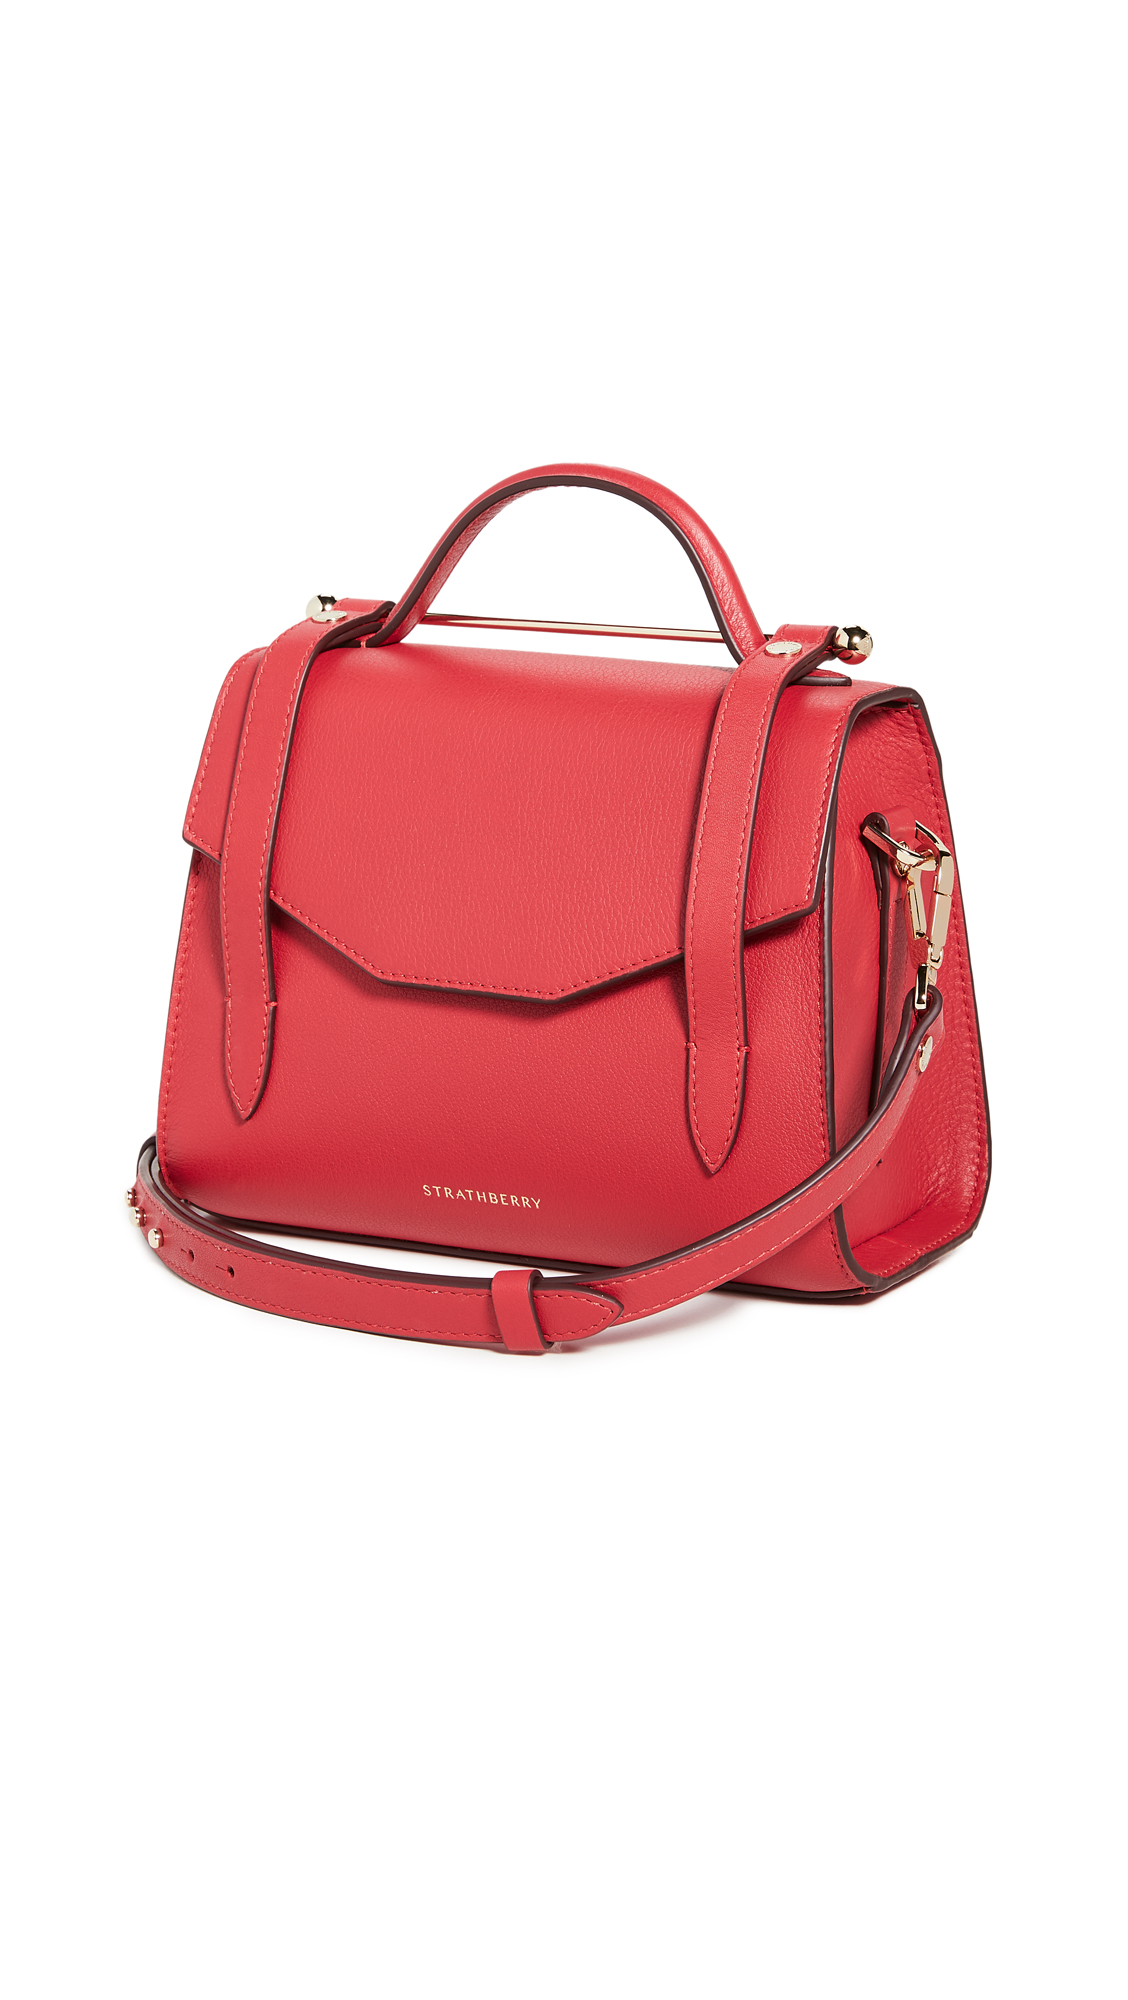 Strathberry Allegro Micro' Satchel Style Crossbody Bag In Ruby